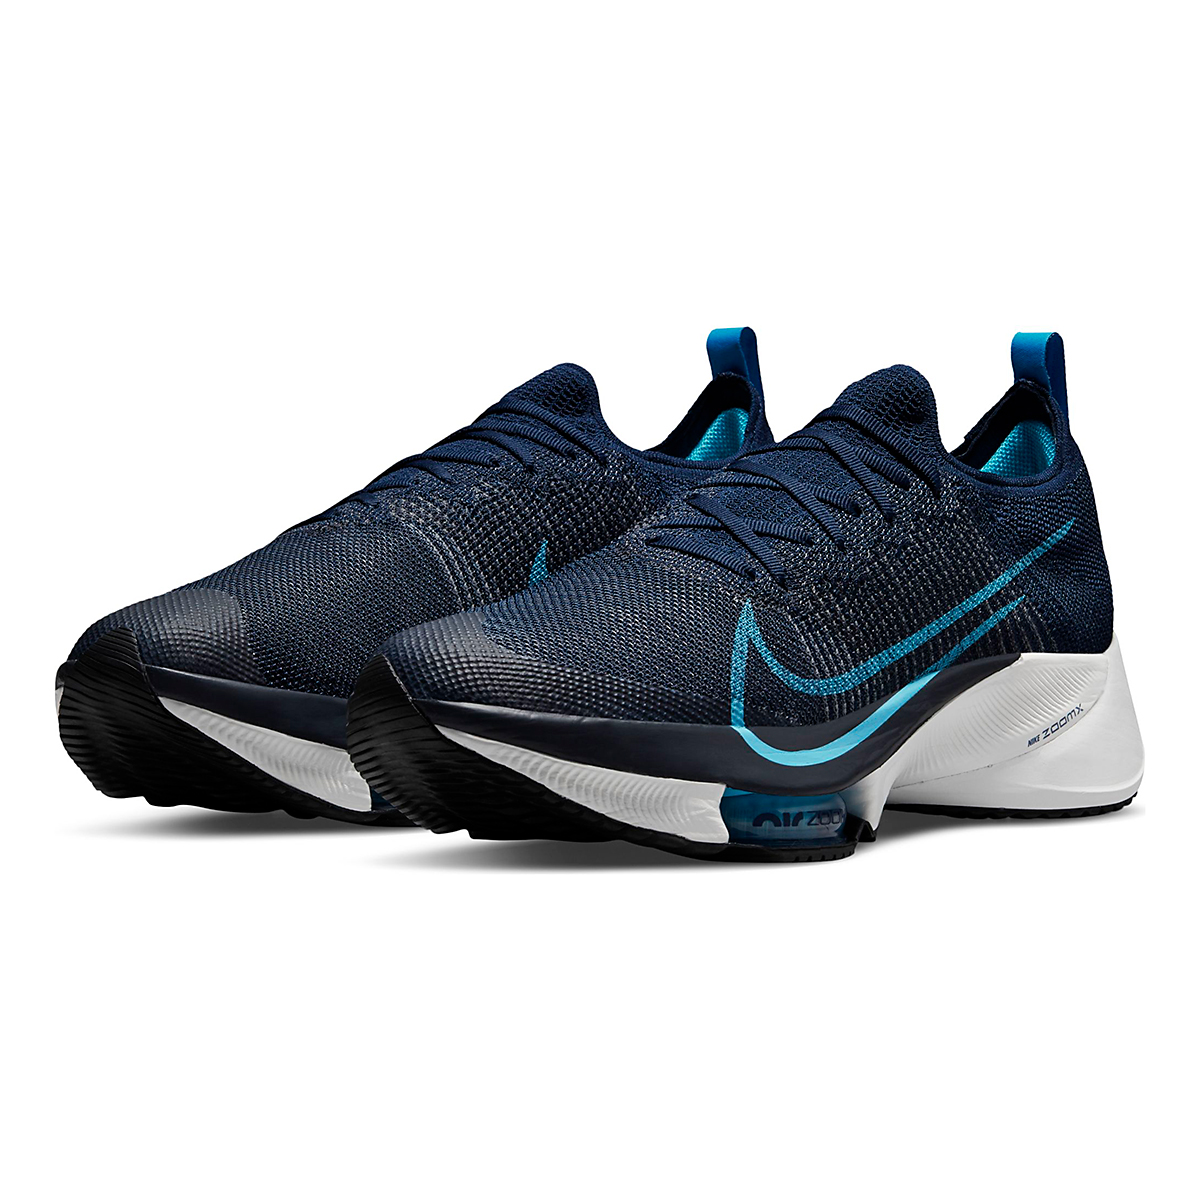 Men's Nike Air Zoom Tempo Next% Running Shoe - Color: College Navy/Chlorine Blue/Platinum Tint - Size: 7.5 - Width: Regular, College Navy/Chlorine Blue/Platinum Tint, large, image 4